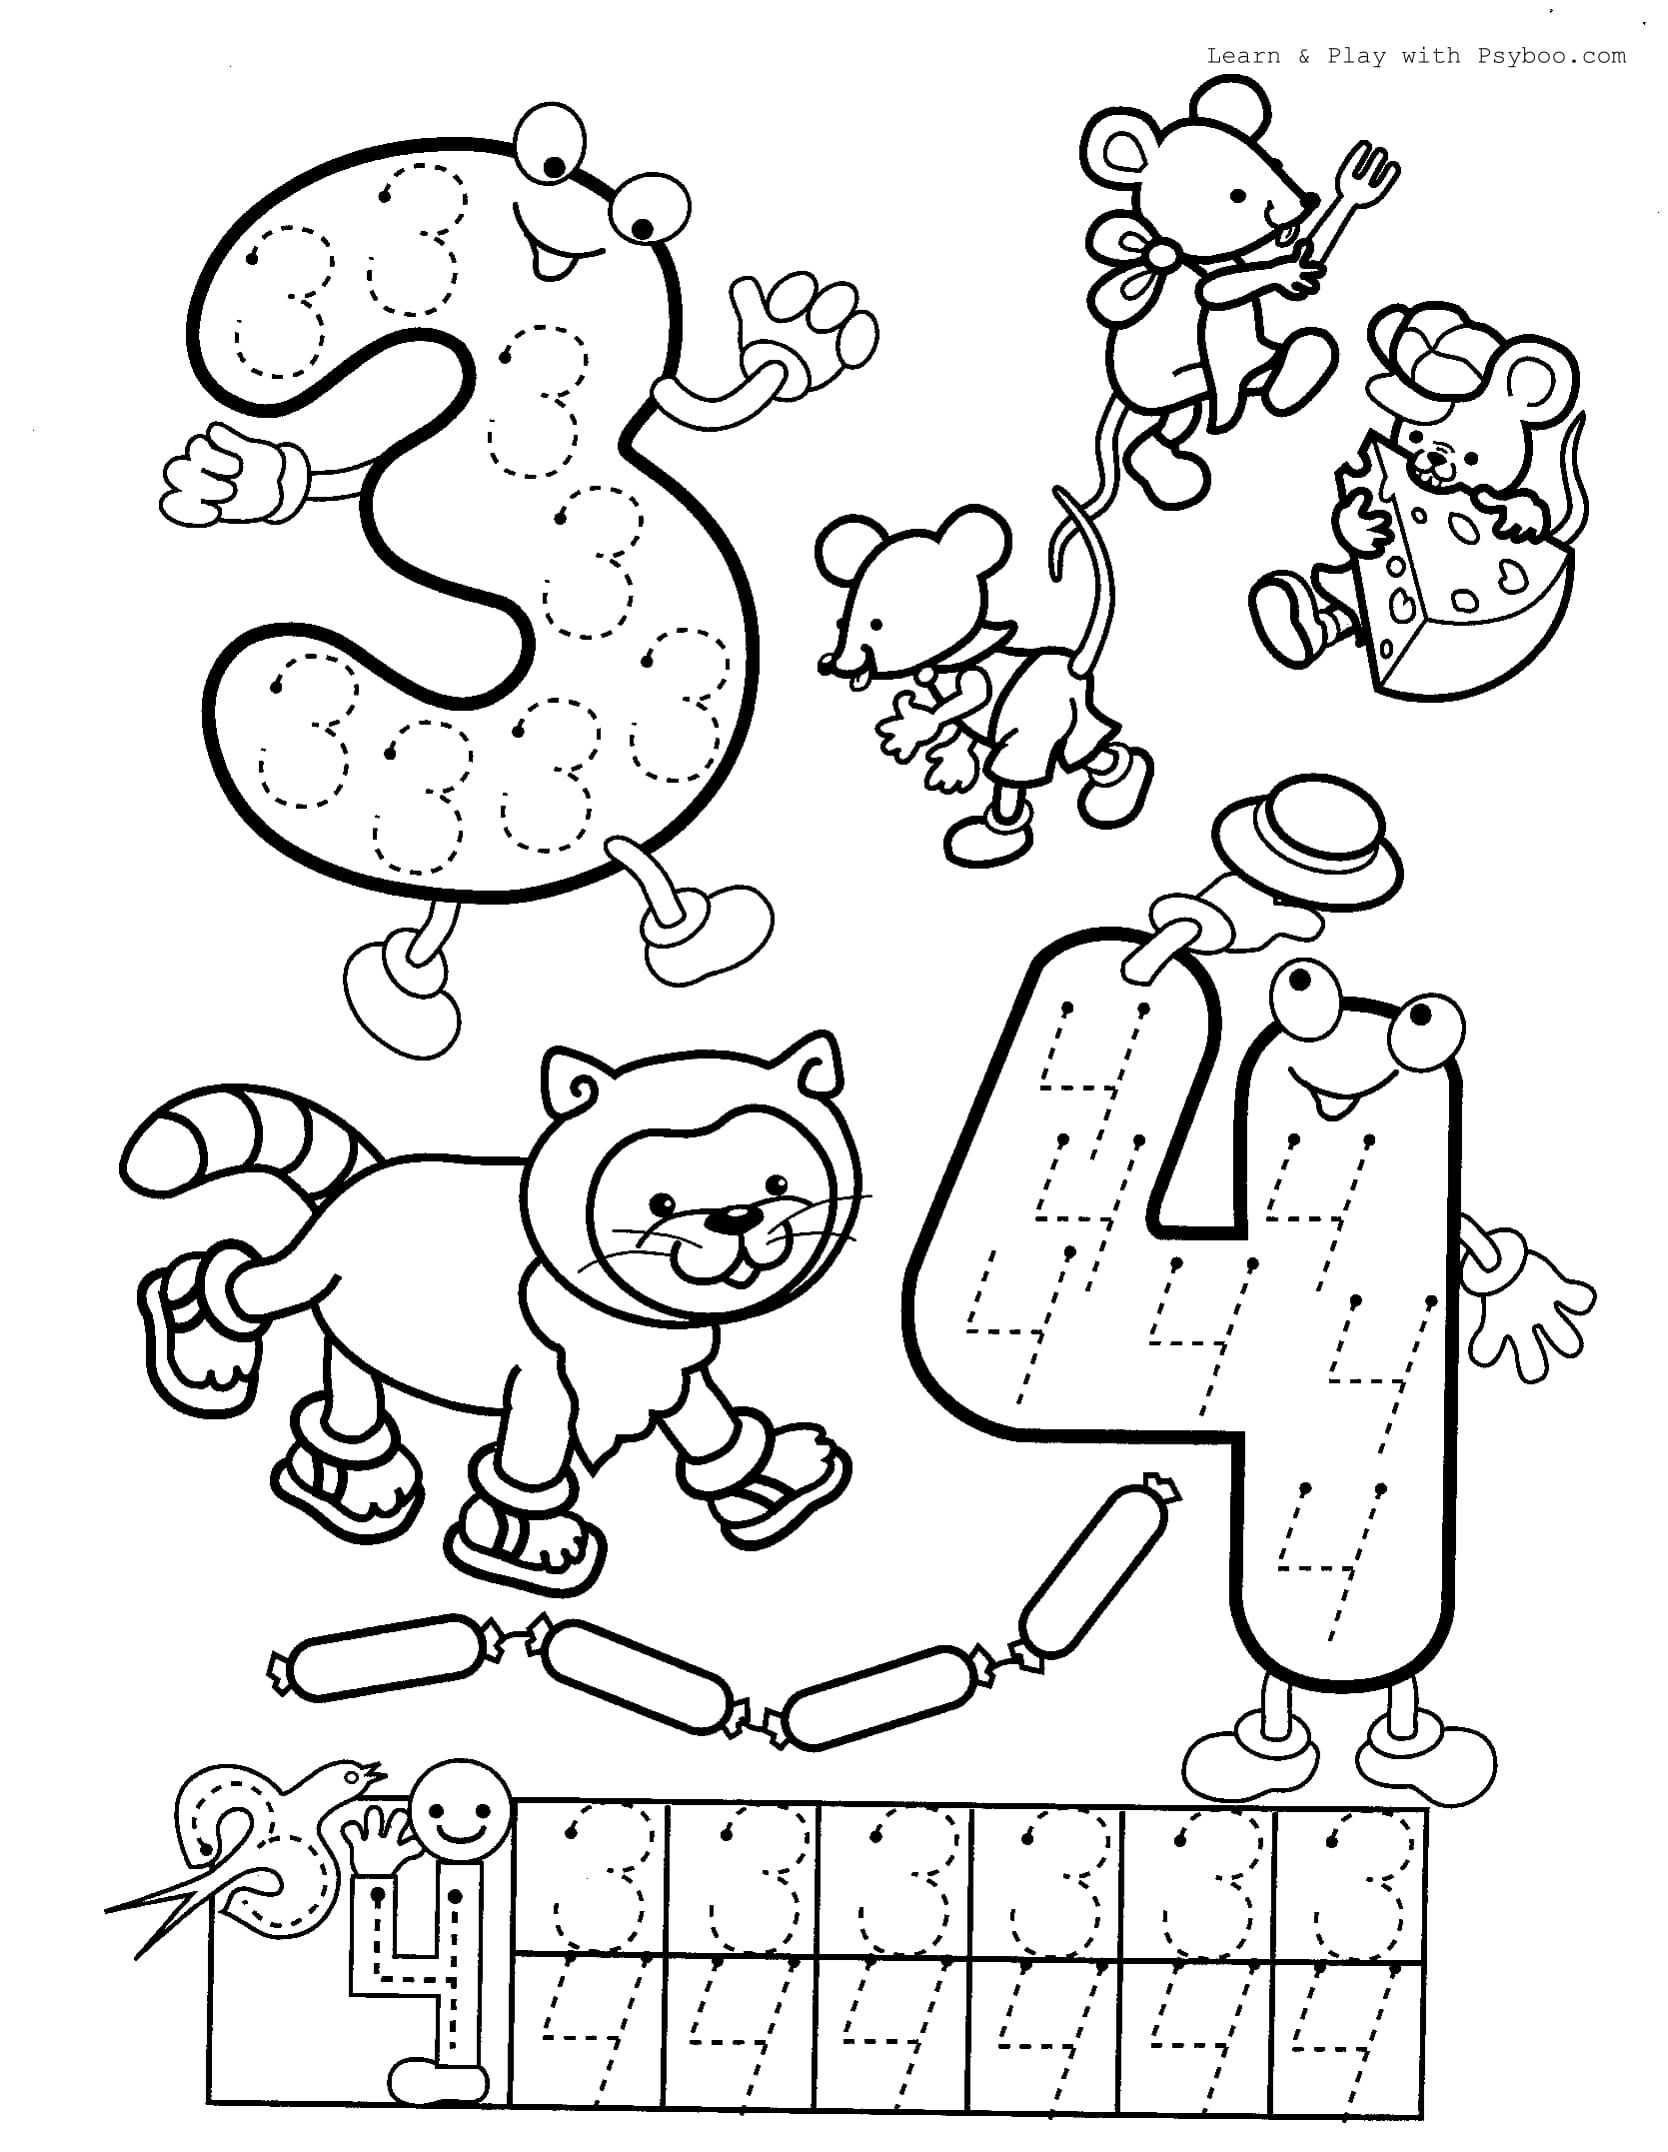 Printable Number 3 4 Coloring Page For Free In